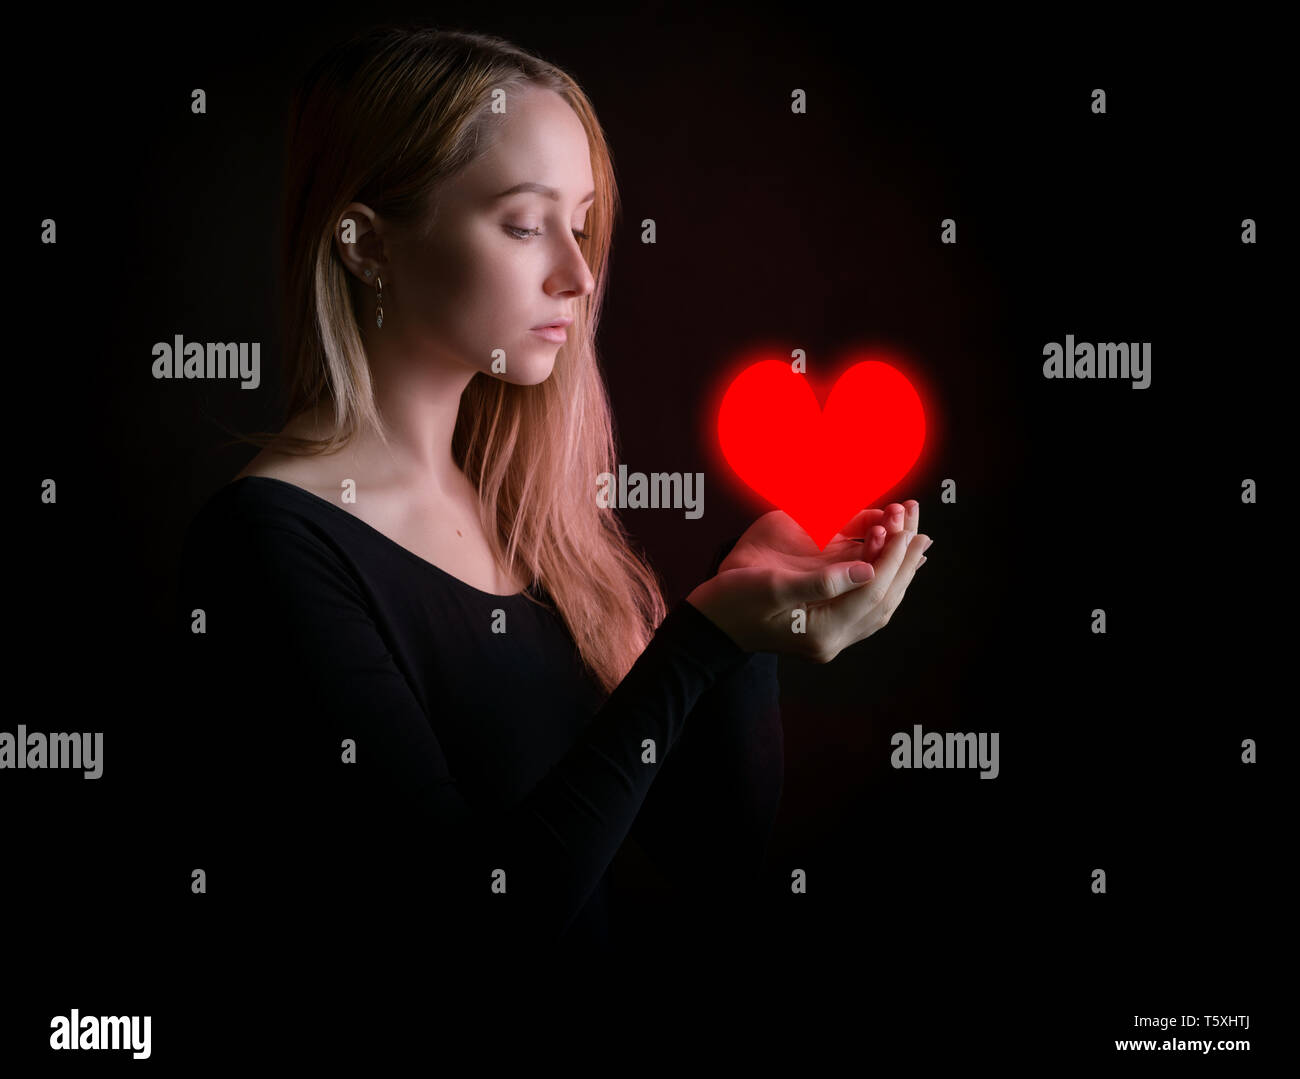 Sad young woman hold red heart on dark background. - Stock Image